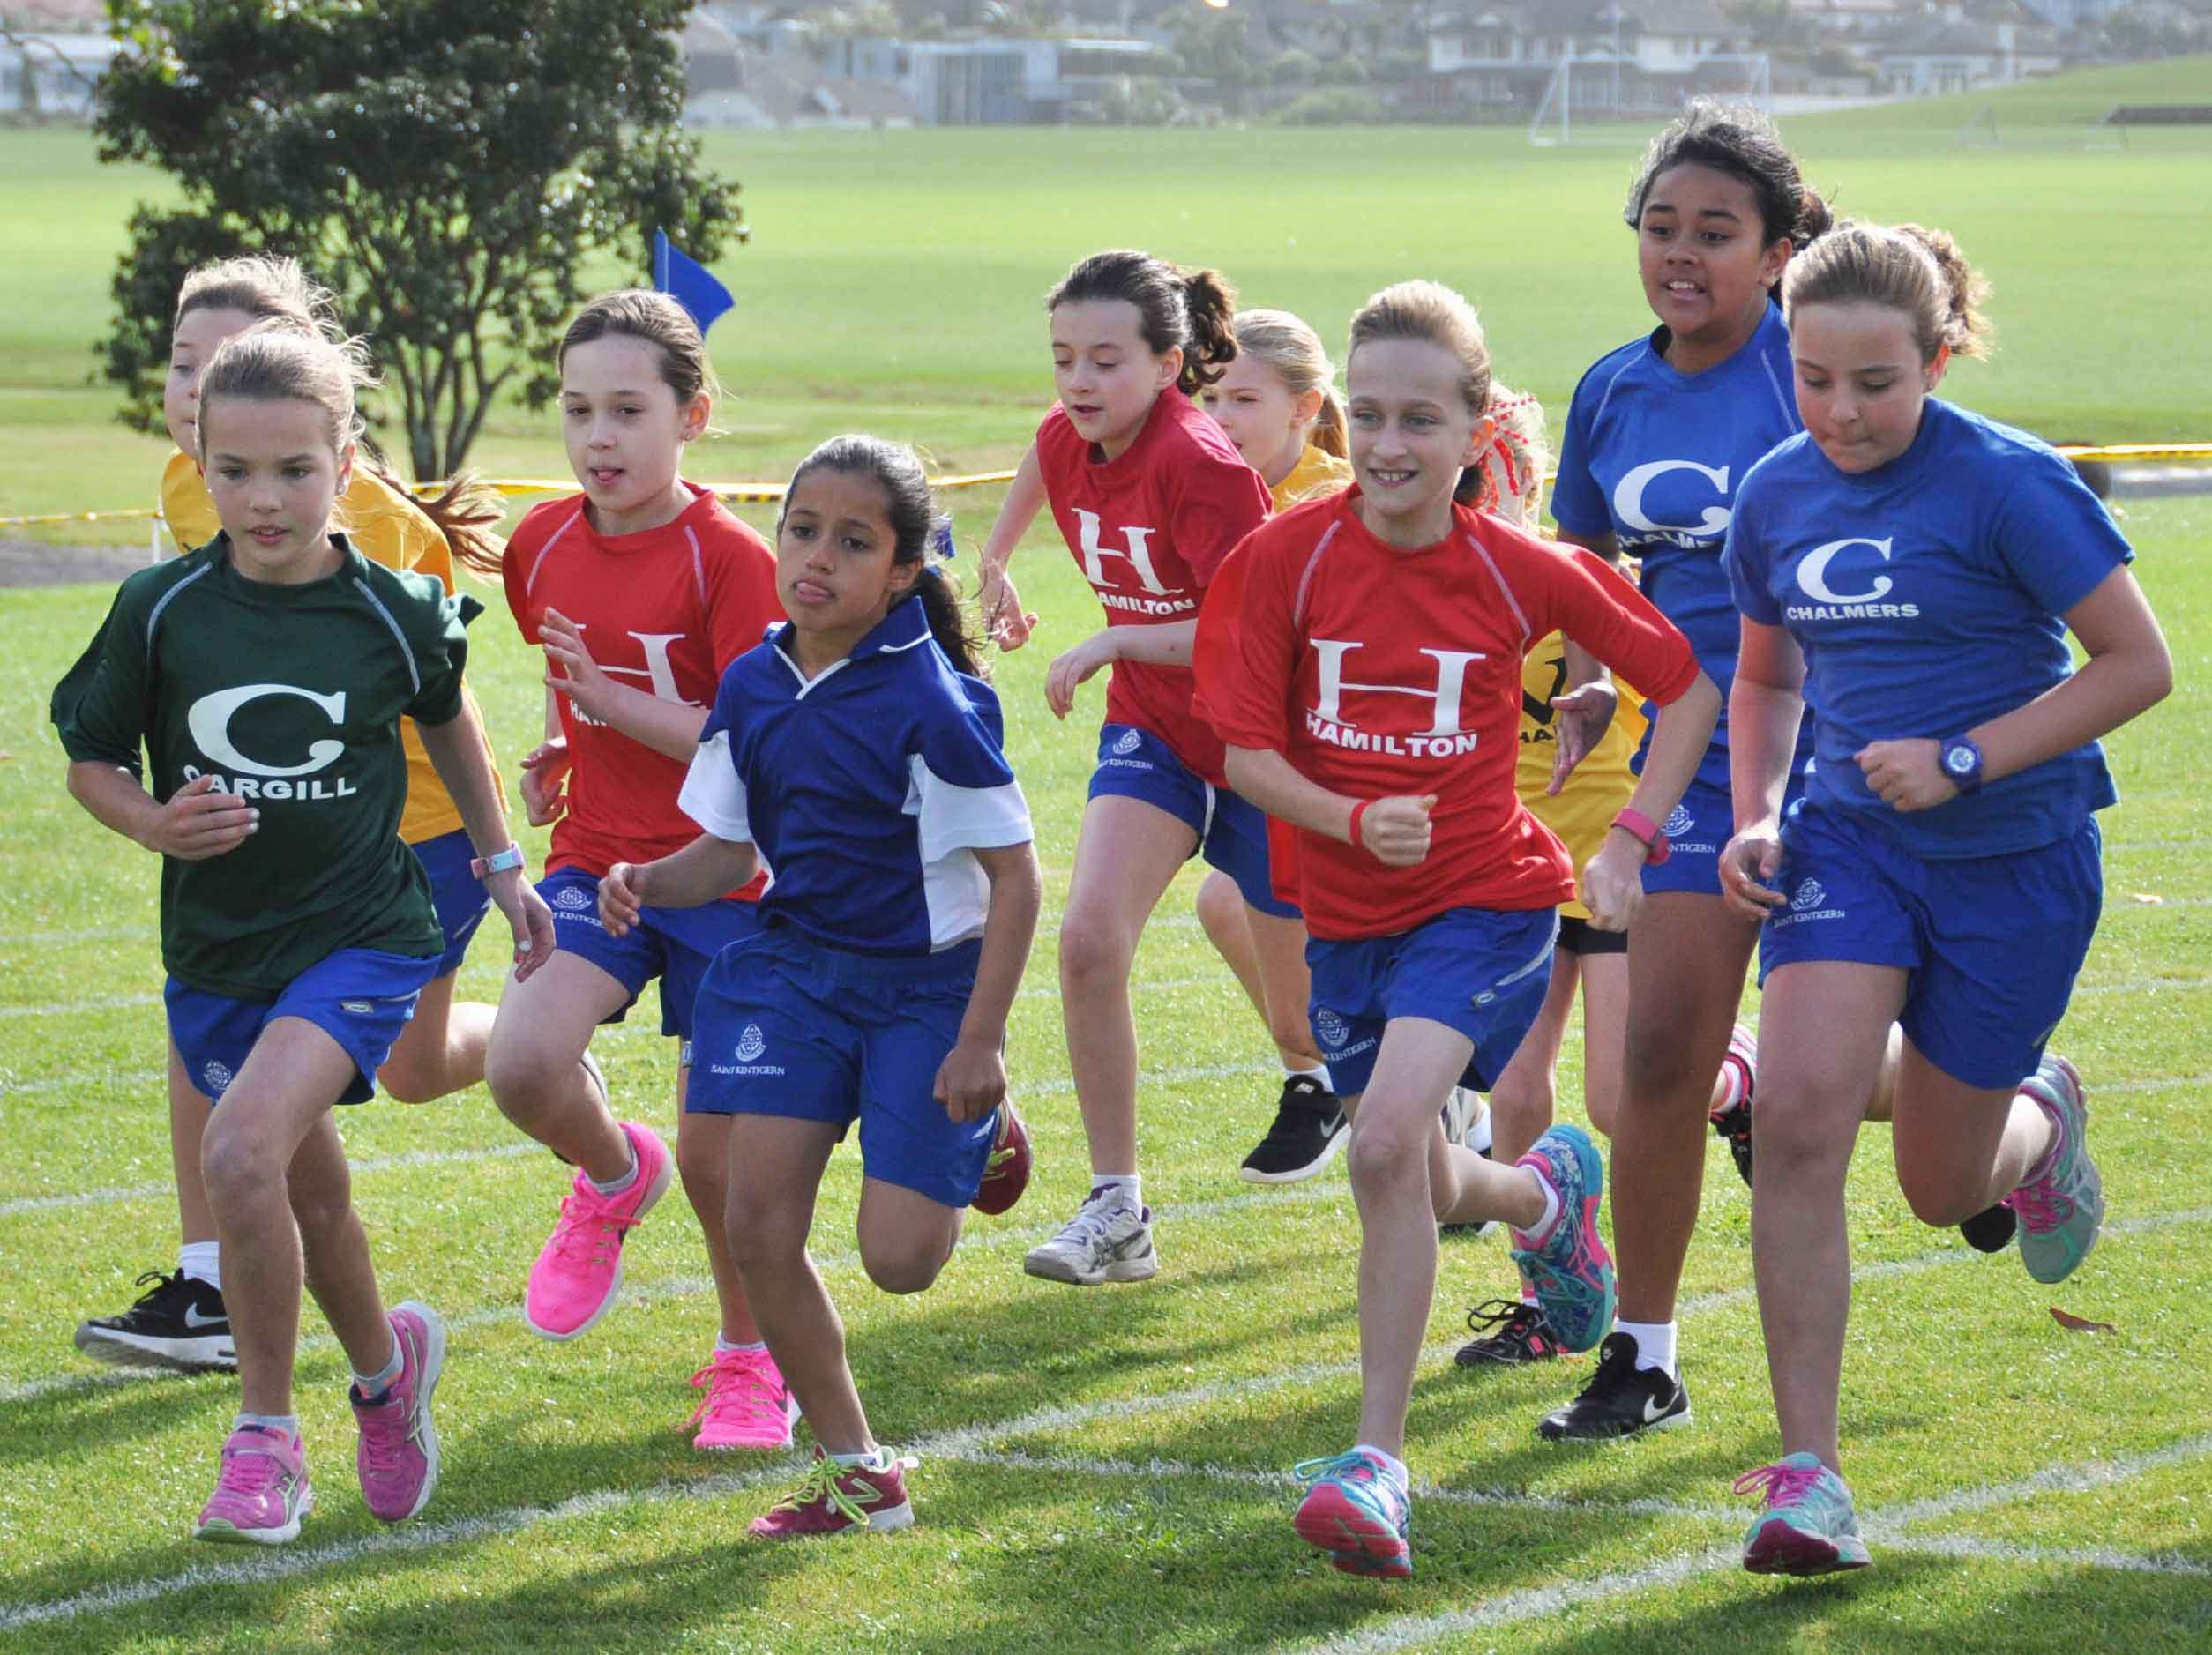 Girls' School Athletics 2016